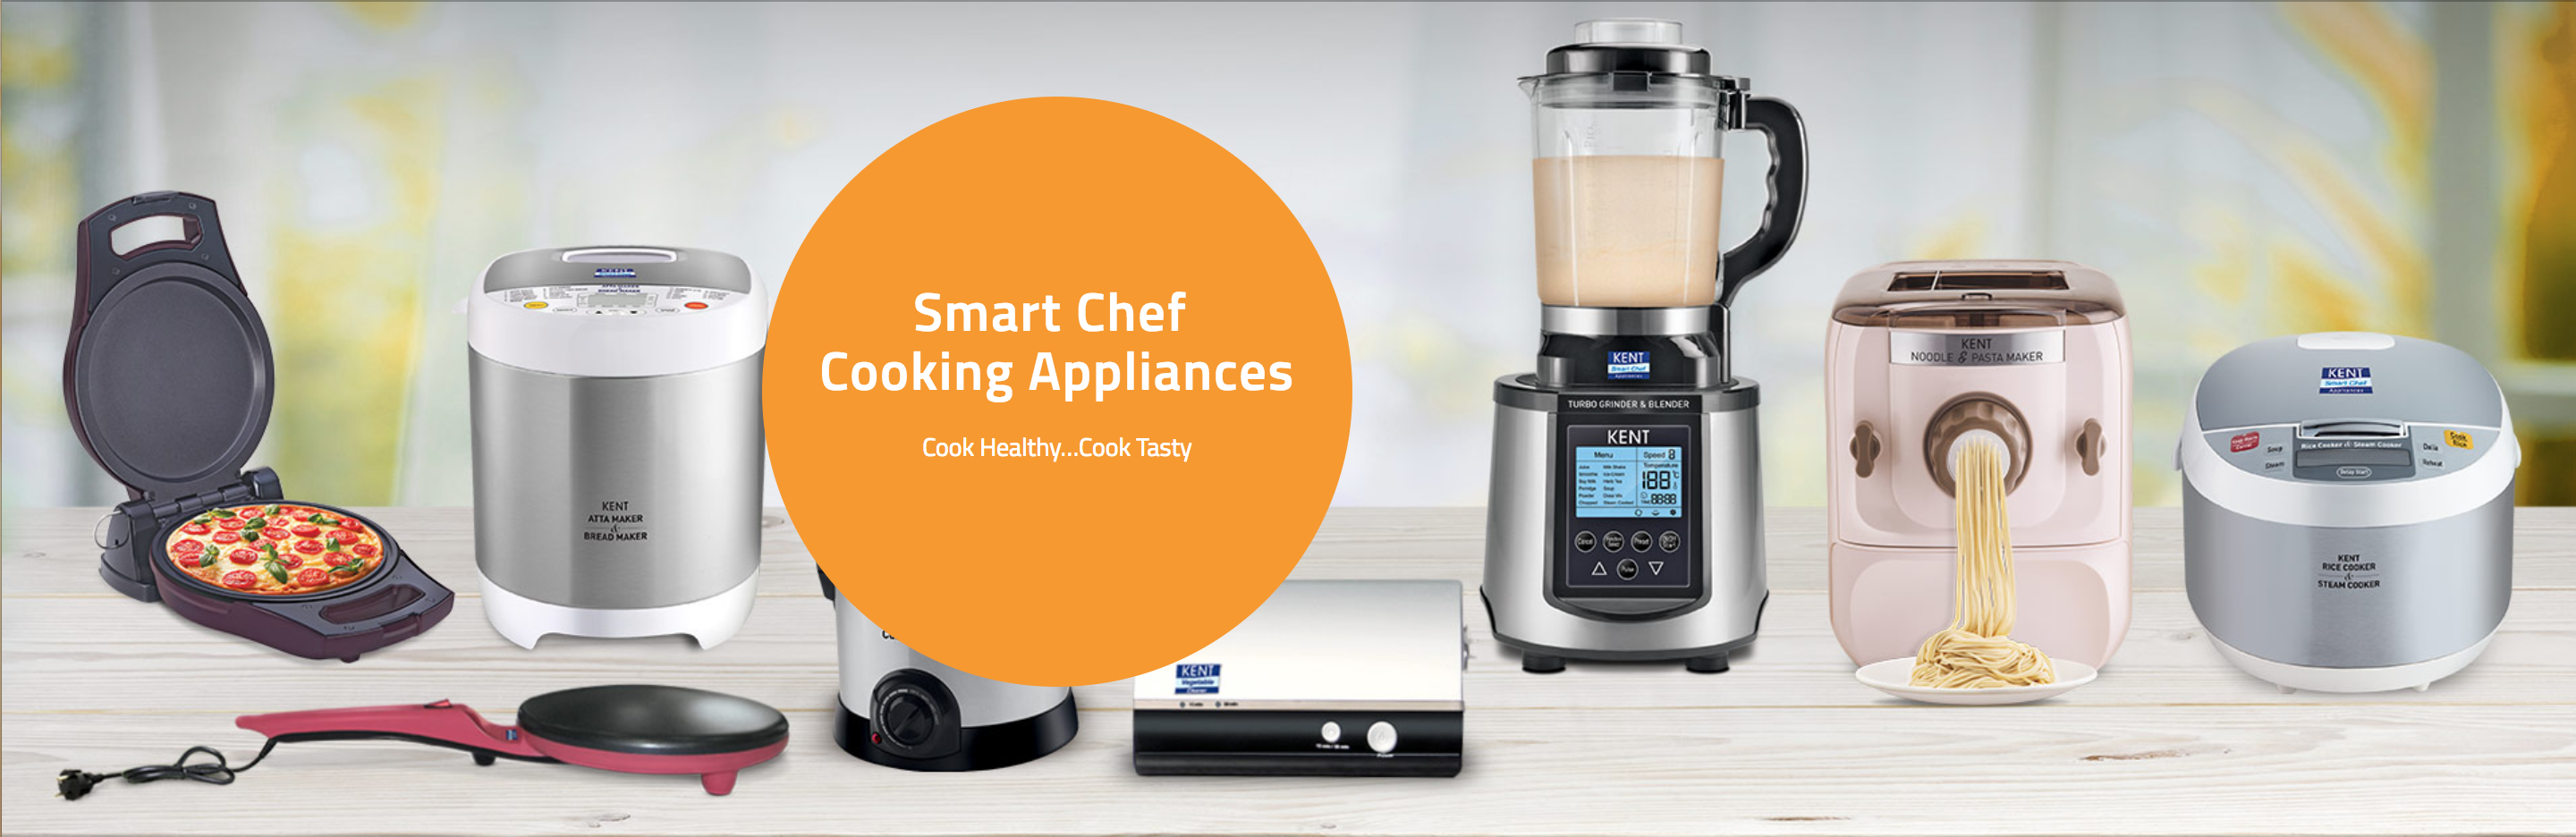 Aqua Kent Home appliances